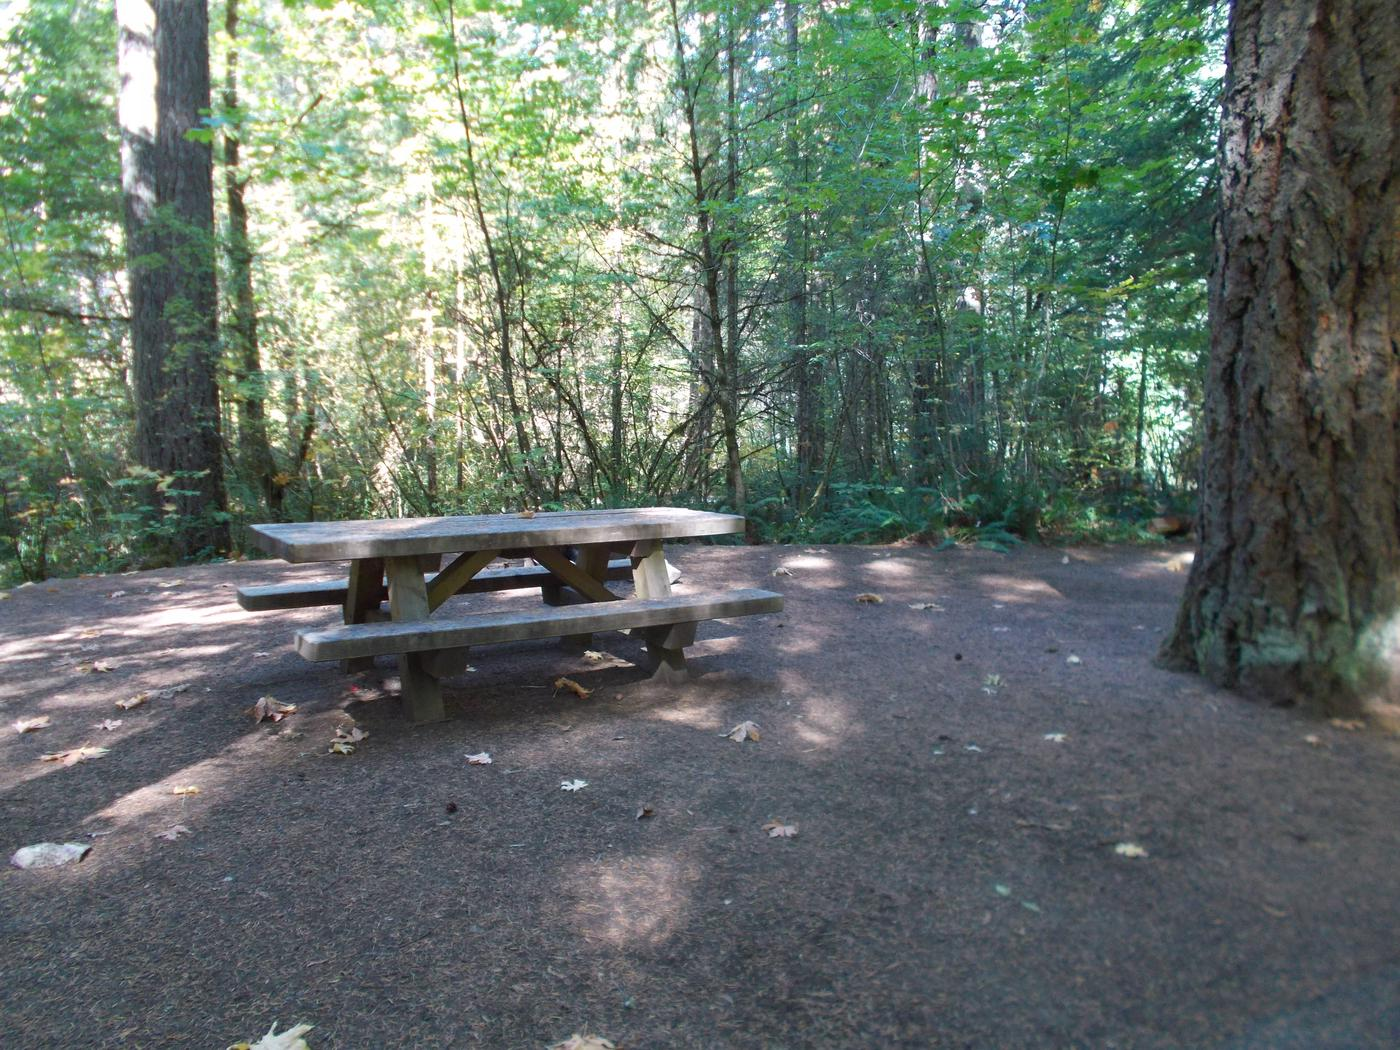 Flat campsite with one picnic table and fire ring.012